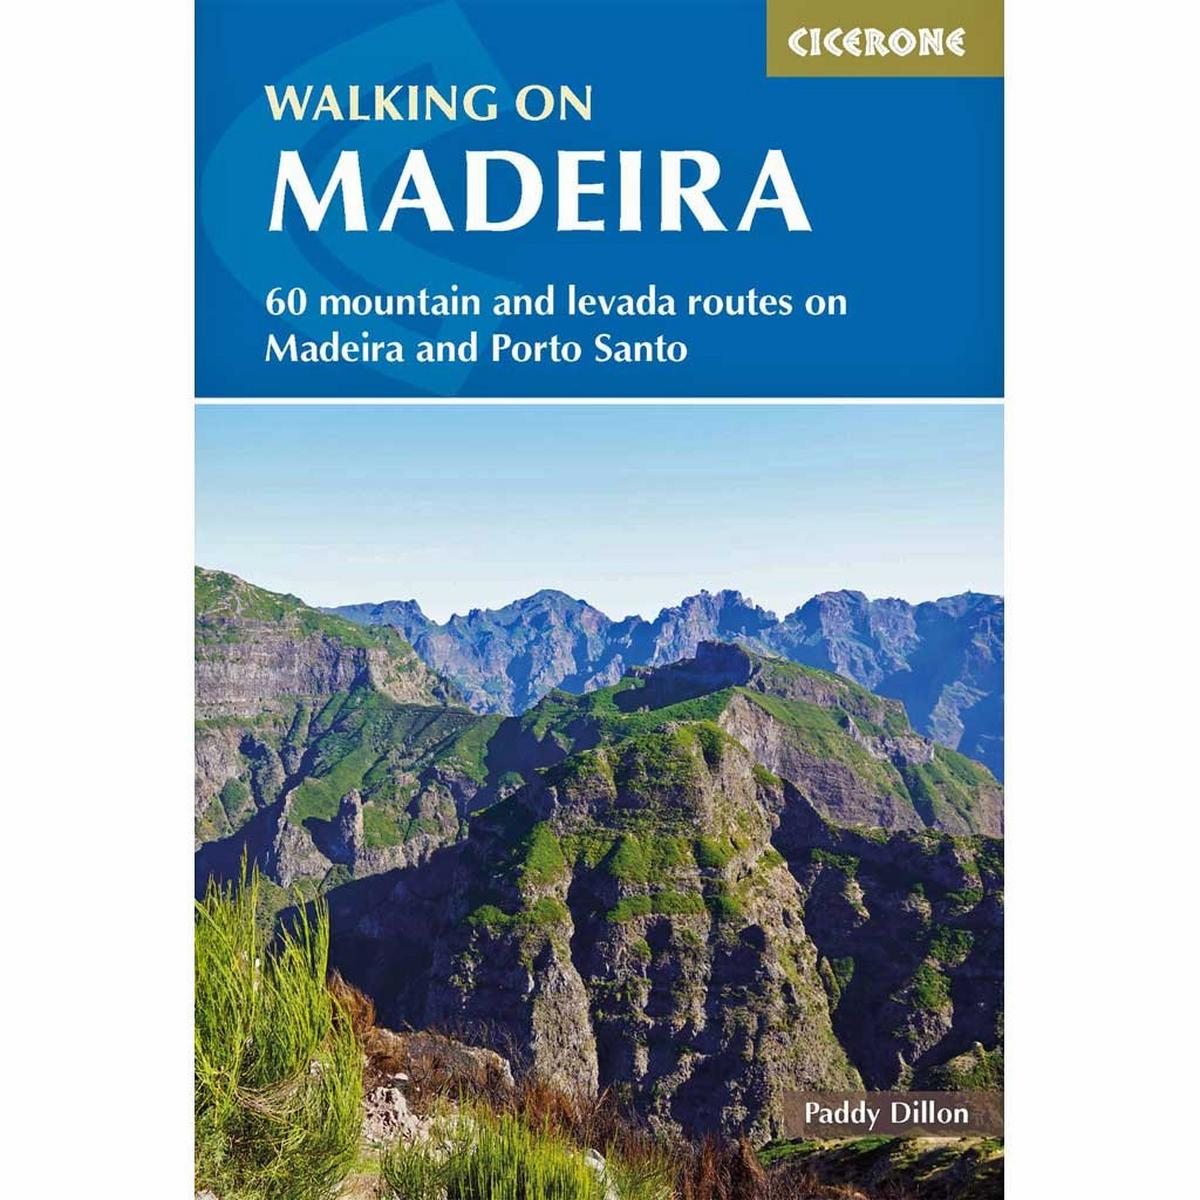 Cicerone Guide Book: Walking on Madeira